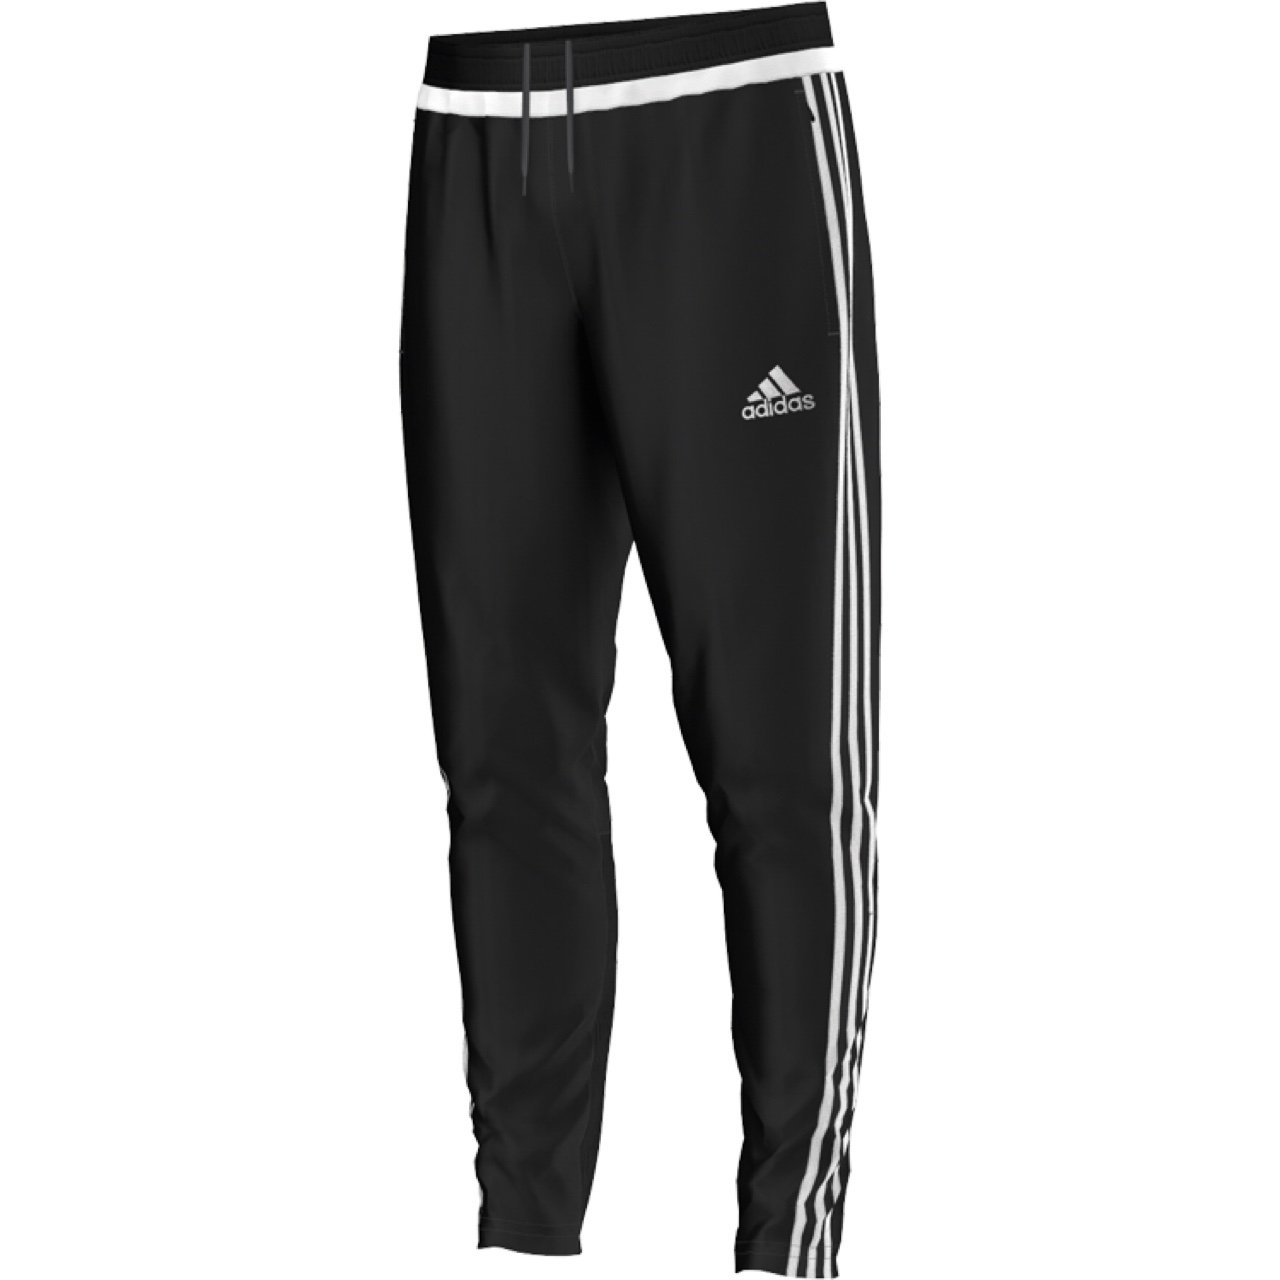 ae048ddde4a8 Adidas Tiro 15 training pants joggers tracksuit bottoms in - Depop